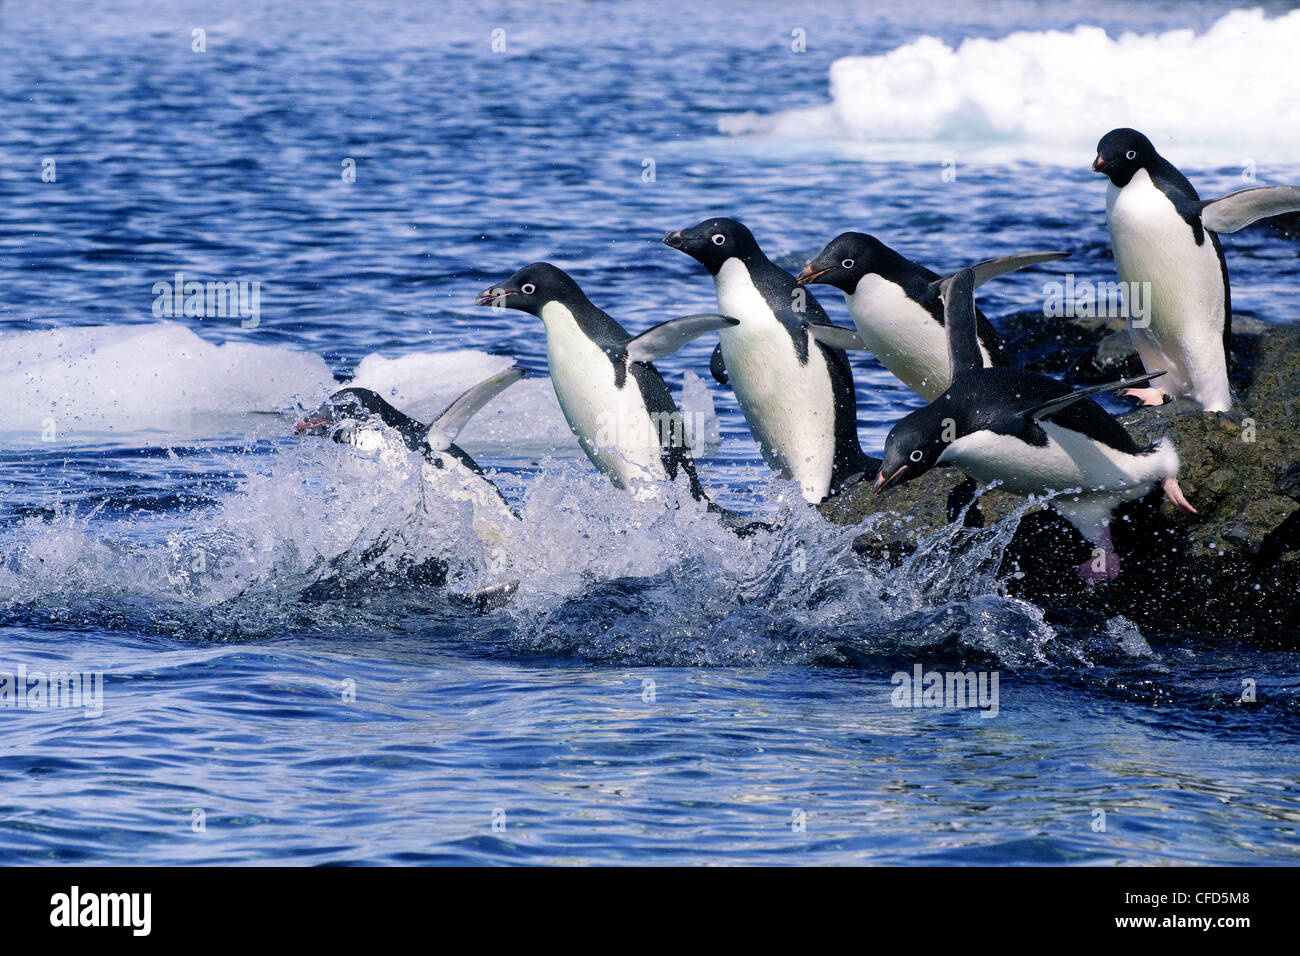 Adelie penguins (Pygoscelis adeliae) leaving on a foraging trip from their nesting colony, Antarctic Peninsula, - Stock Image